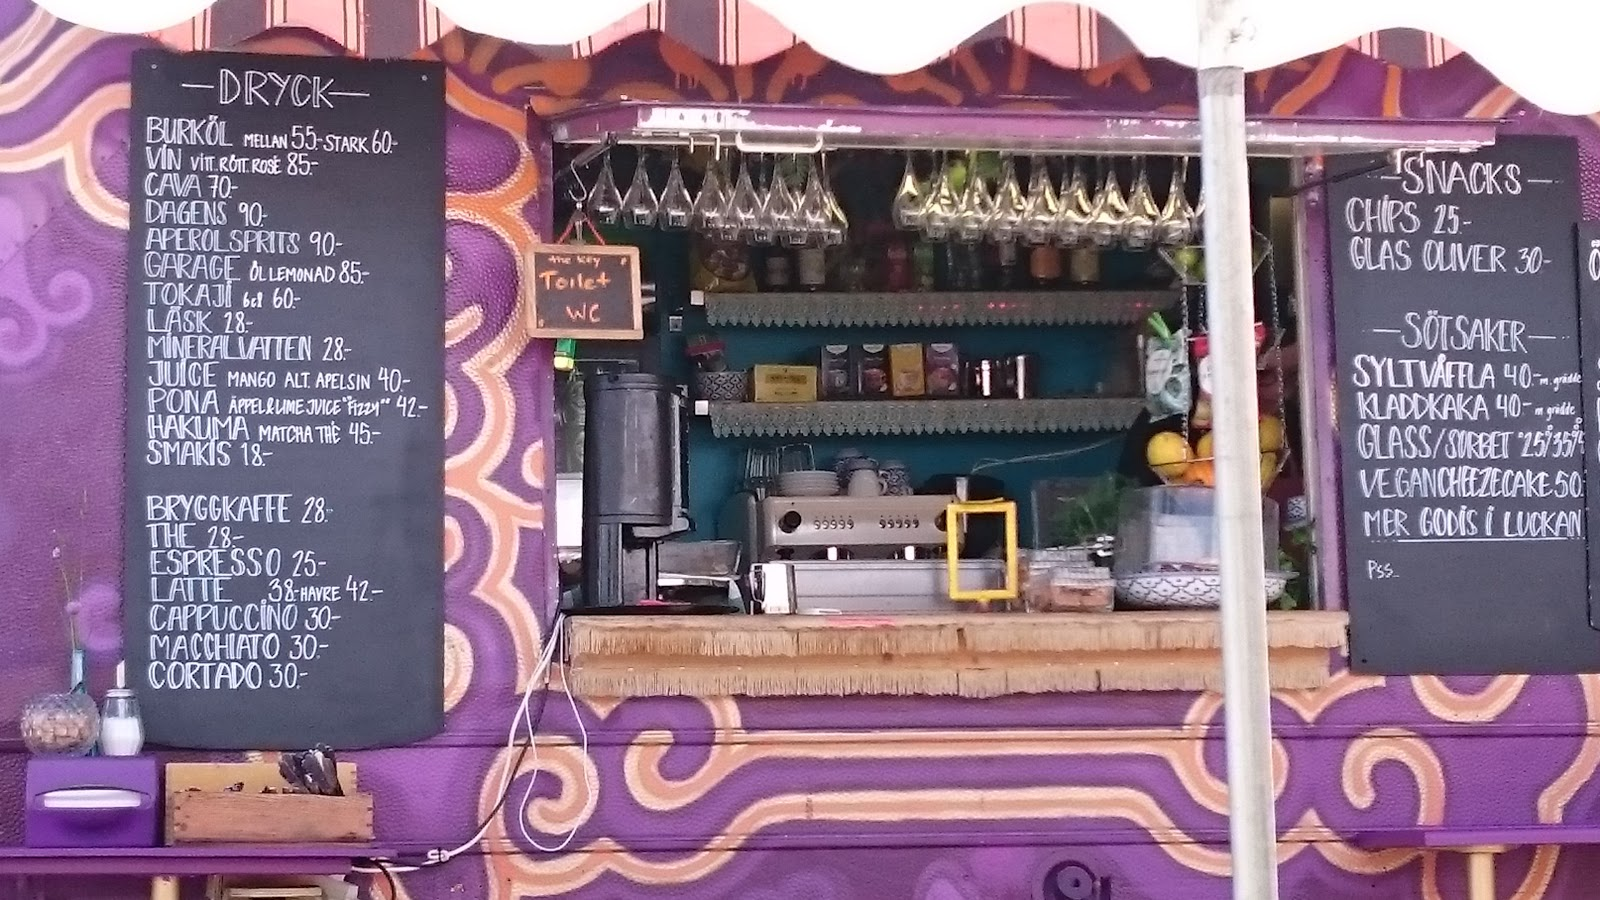 The image shows the front of the café. To the left of the window for ordering the drinks menu is displayed, and to the right is the snacks & fika menu.